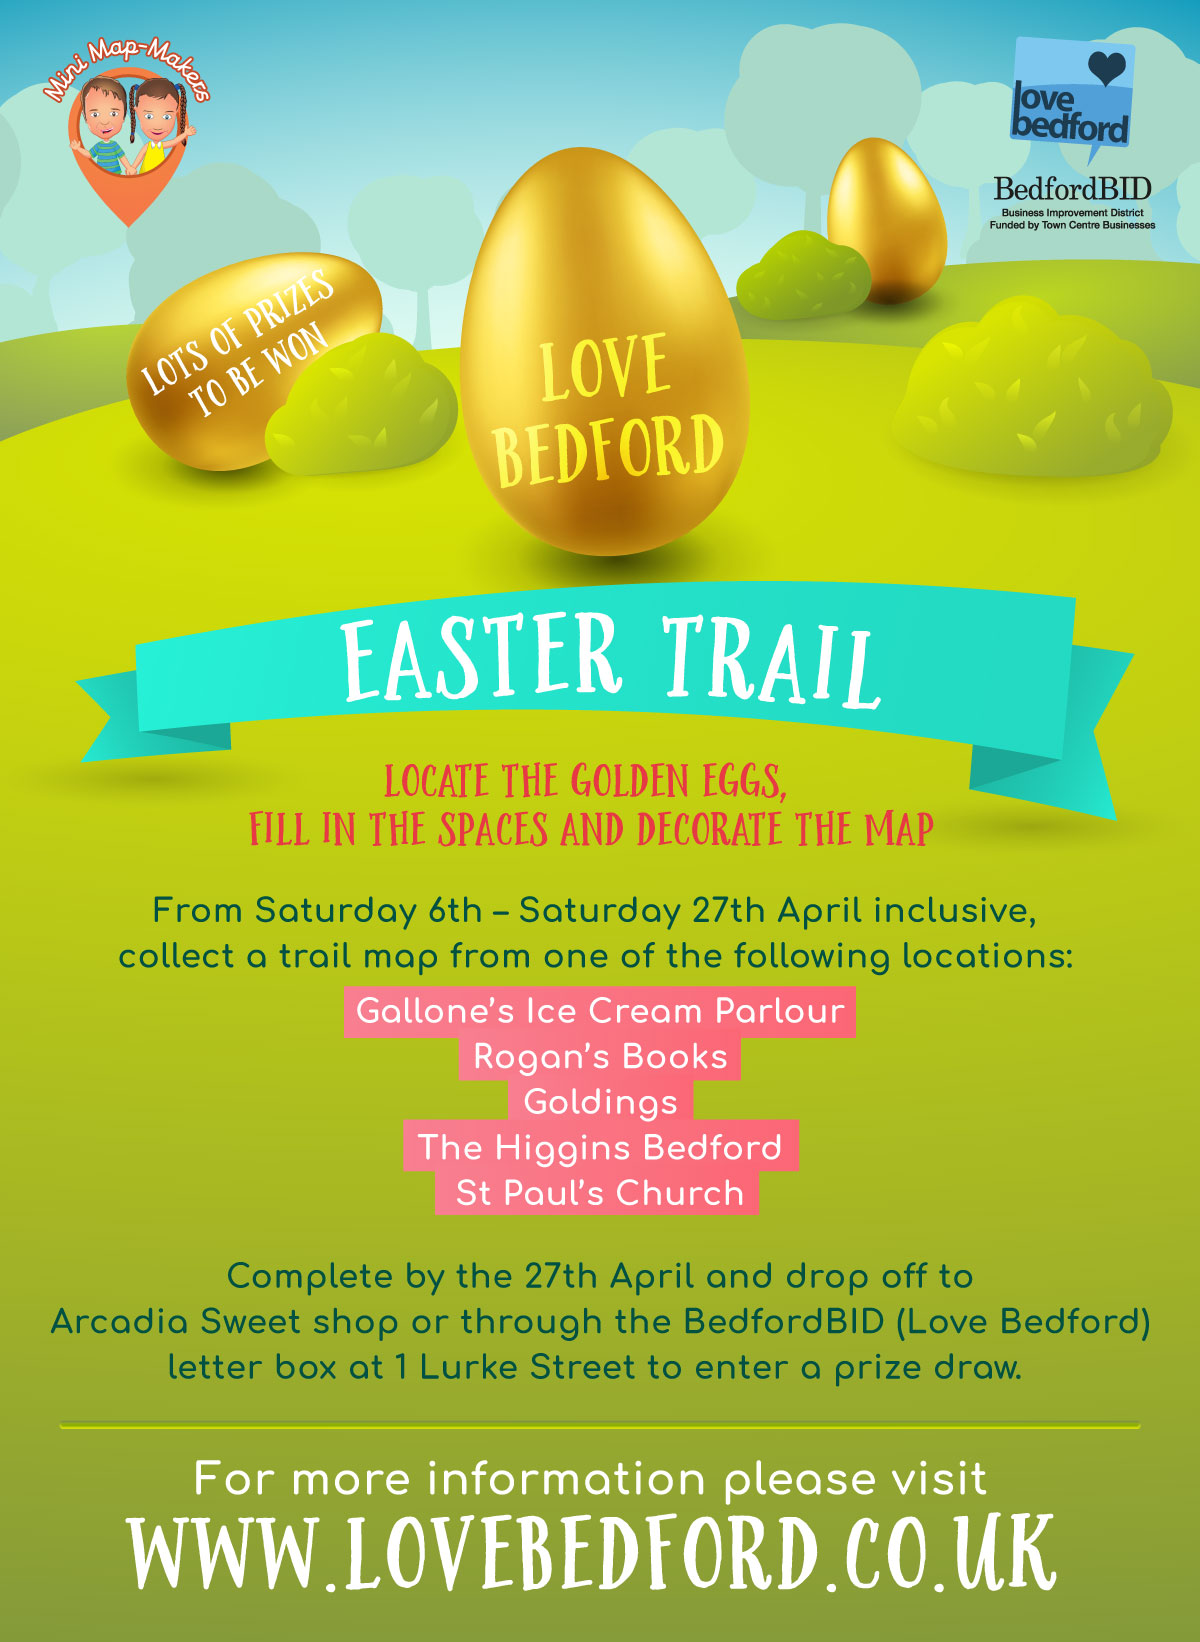 Love Bedford Easter Trail (6th-27th April)